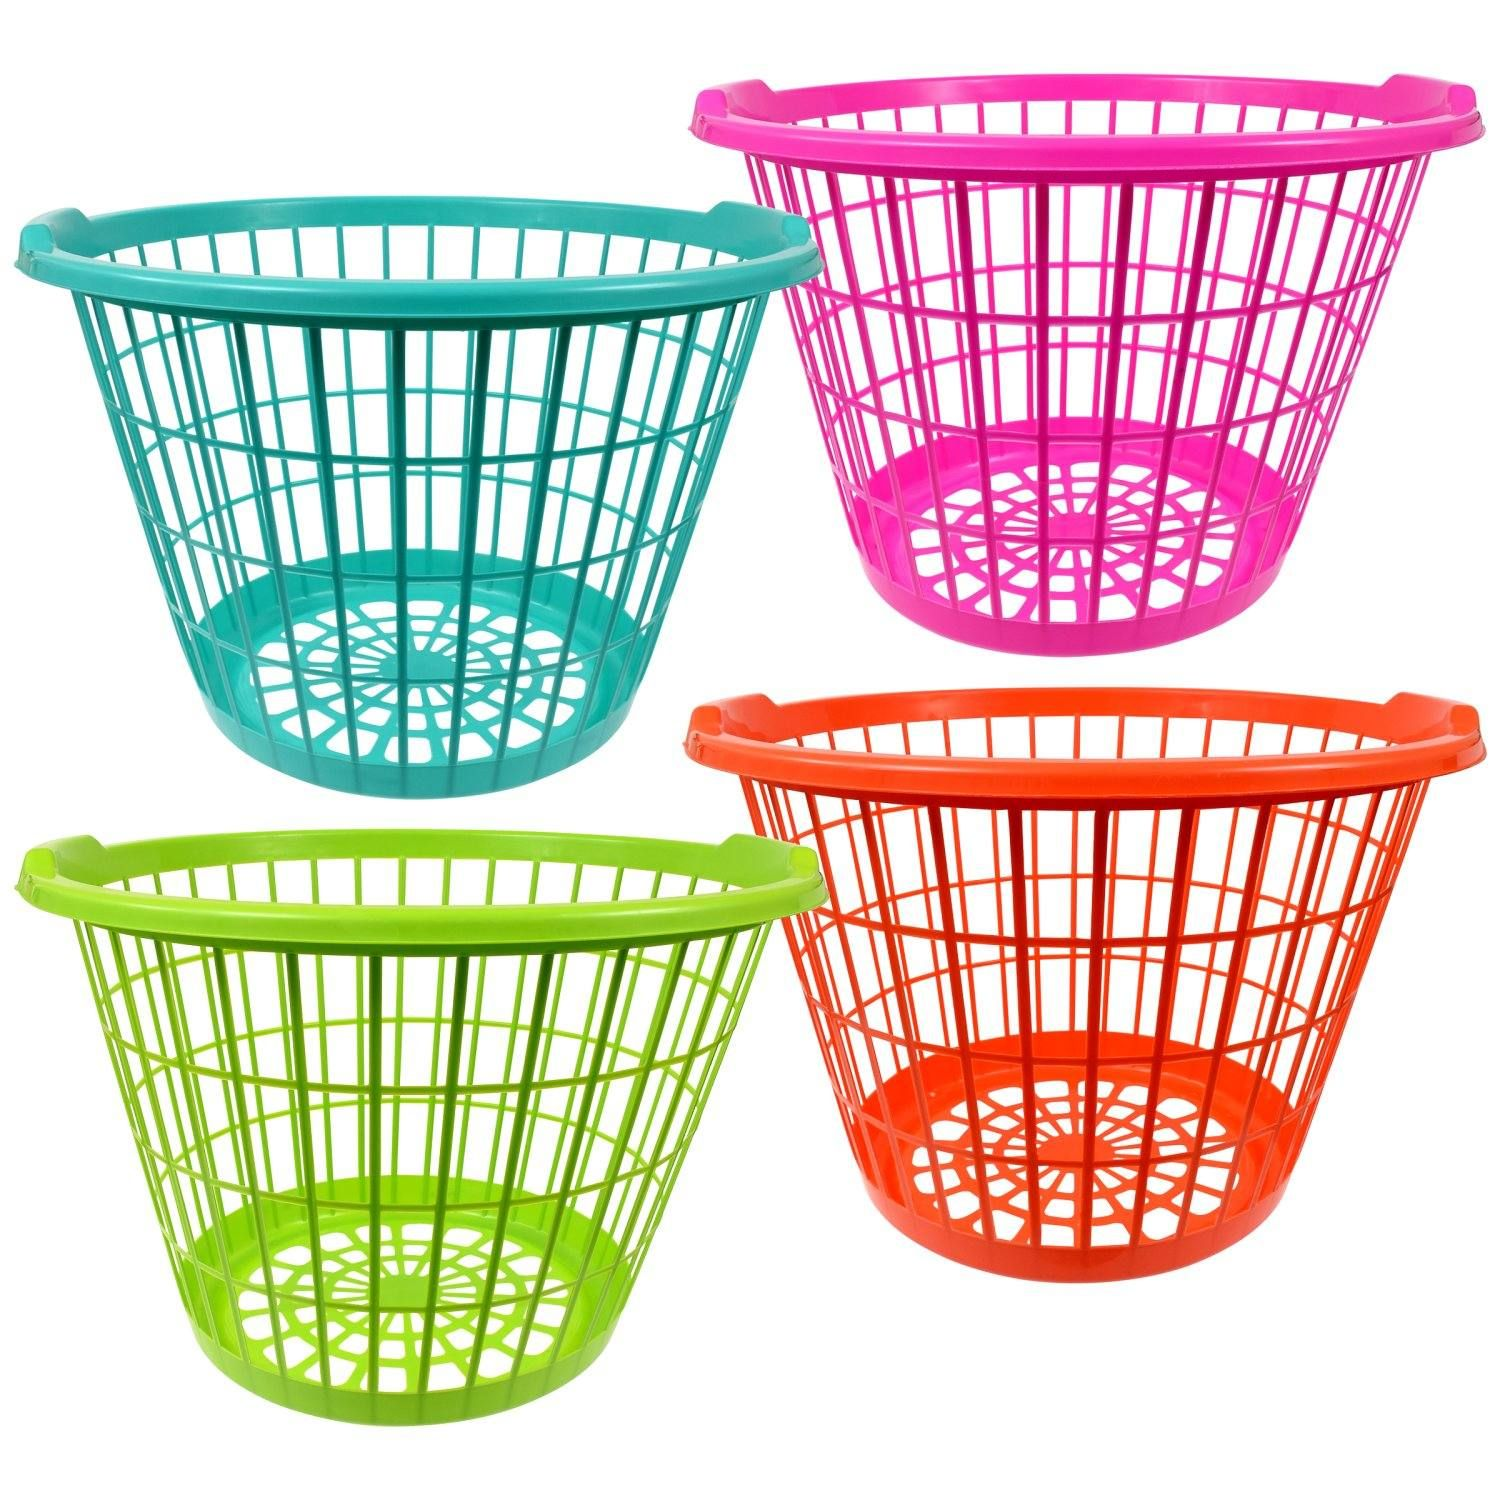 Large Colorful Plastic Laundry Baskets 17 5x12 In Plastic Laundry Basket Laundry Basket Toy Storage Baskets